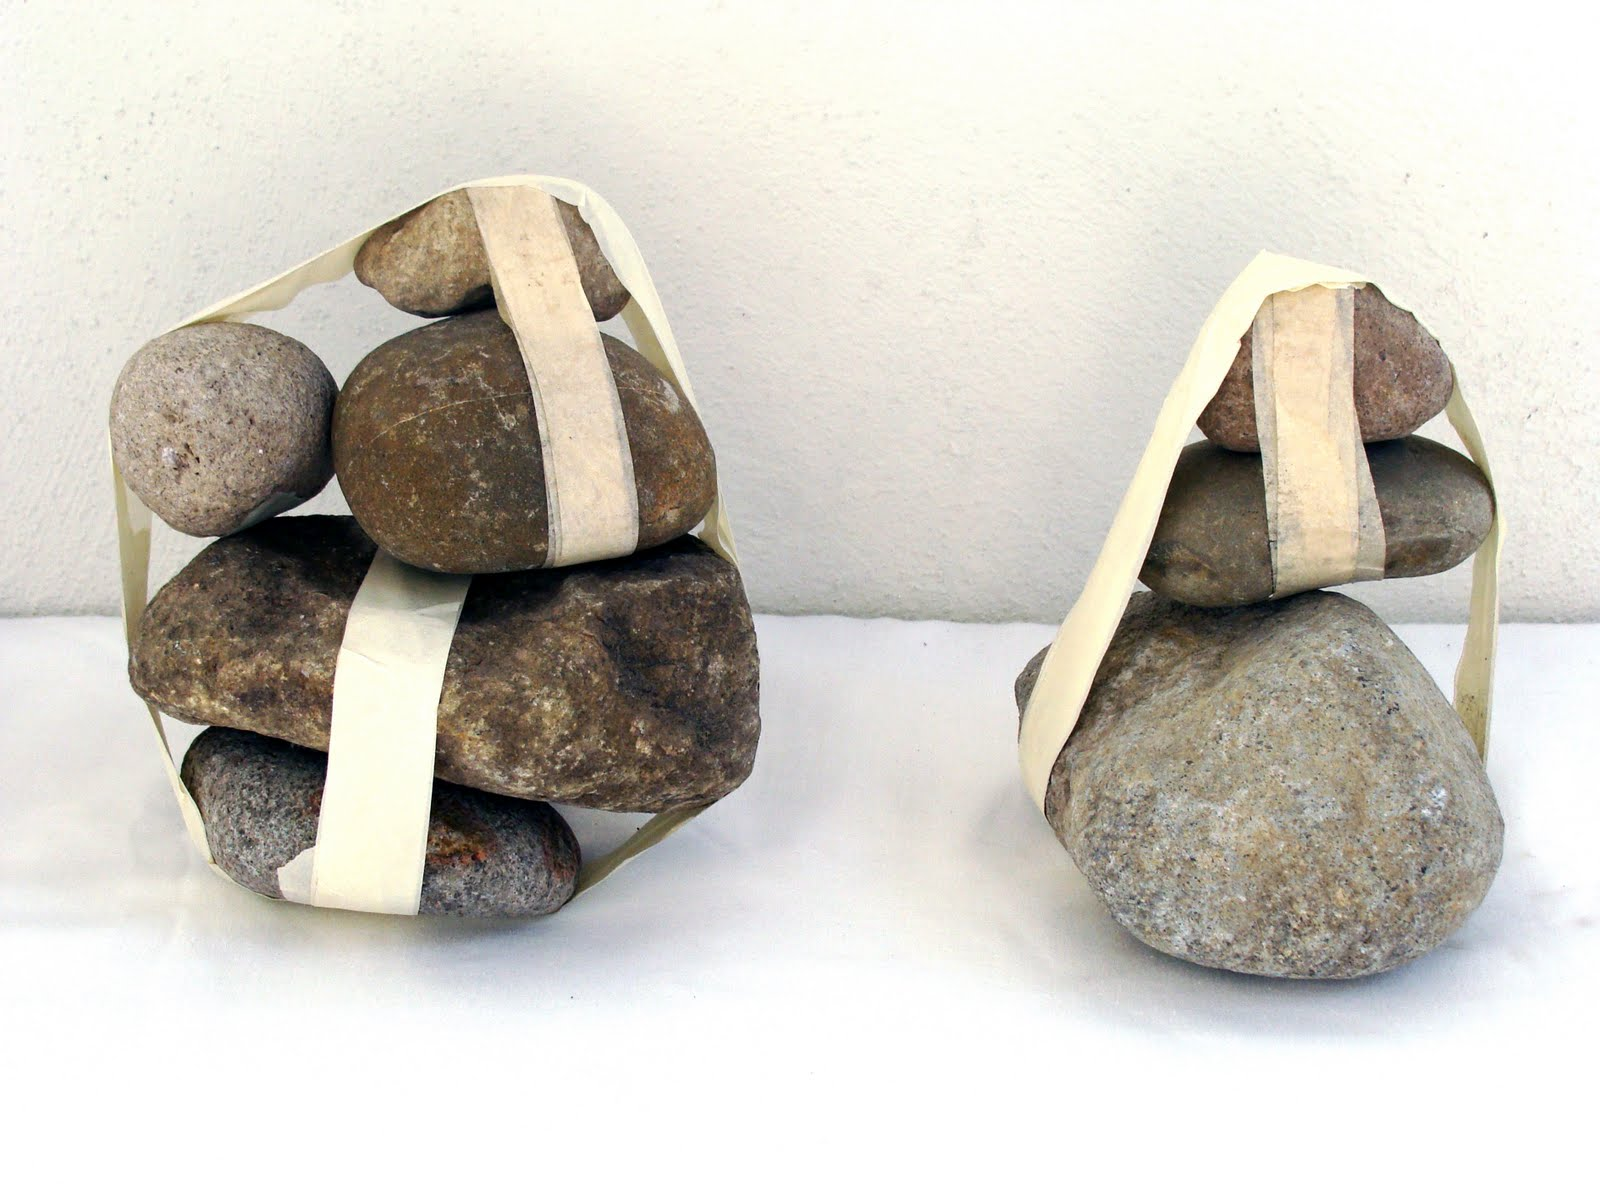 Stones tied with masking tape (VII & VIII)